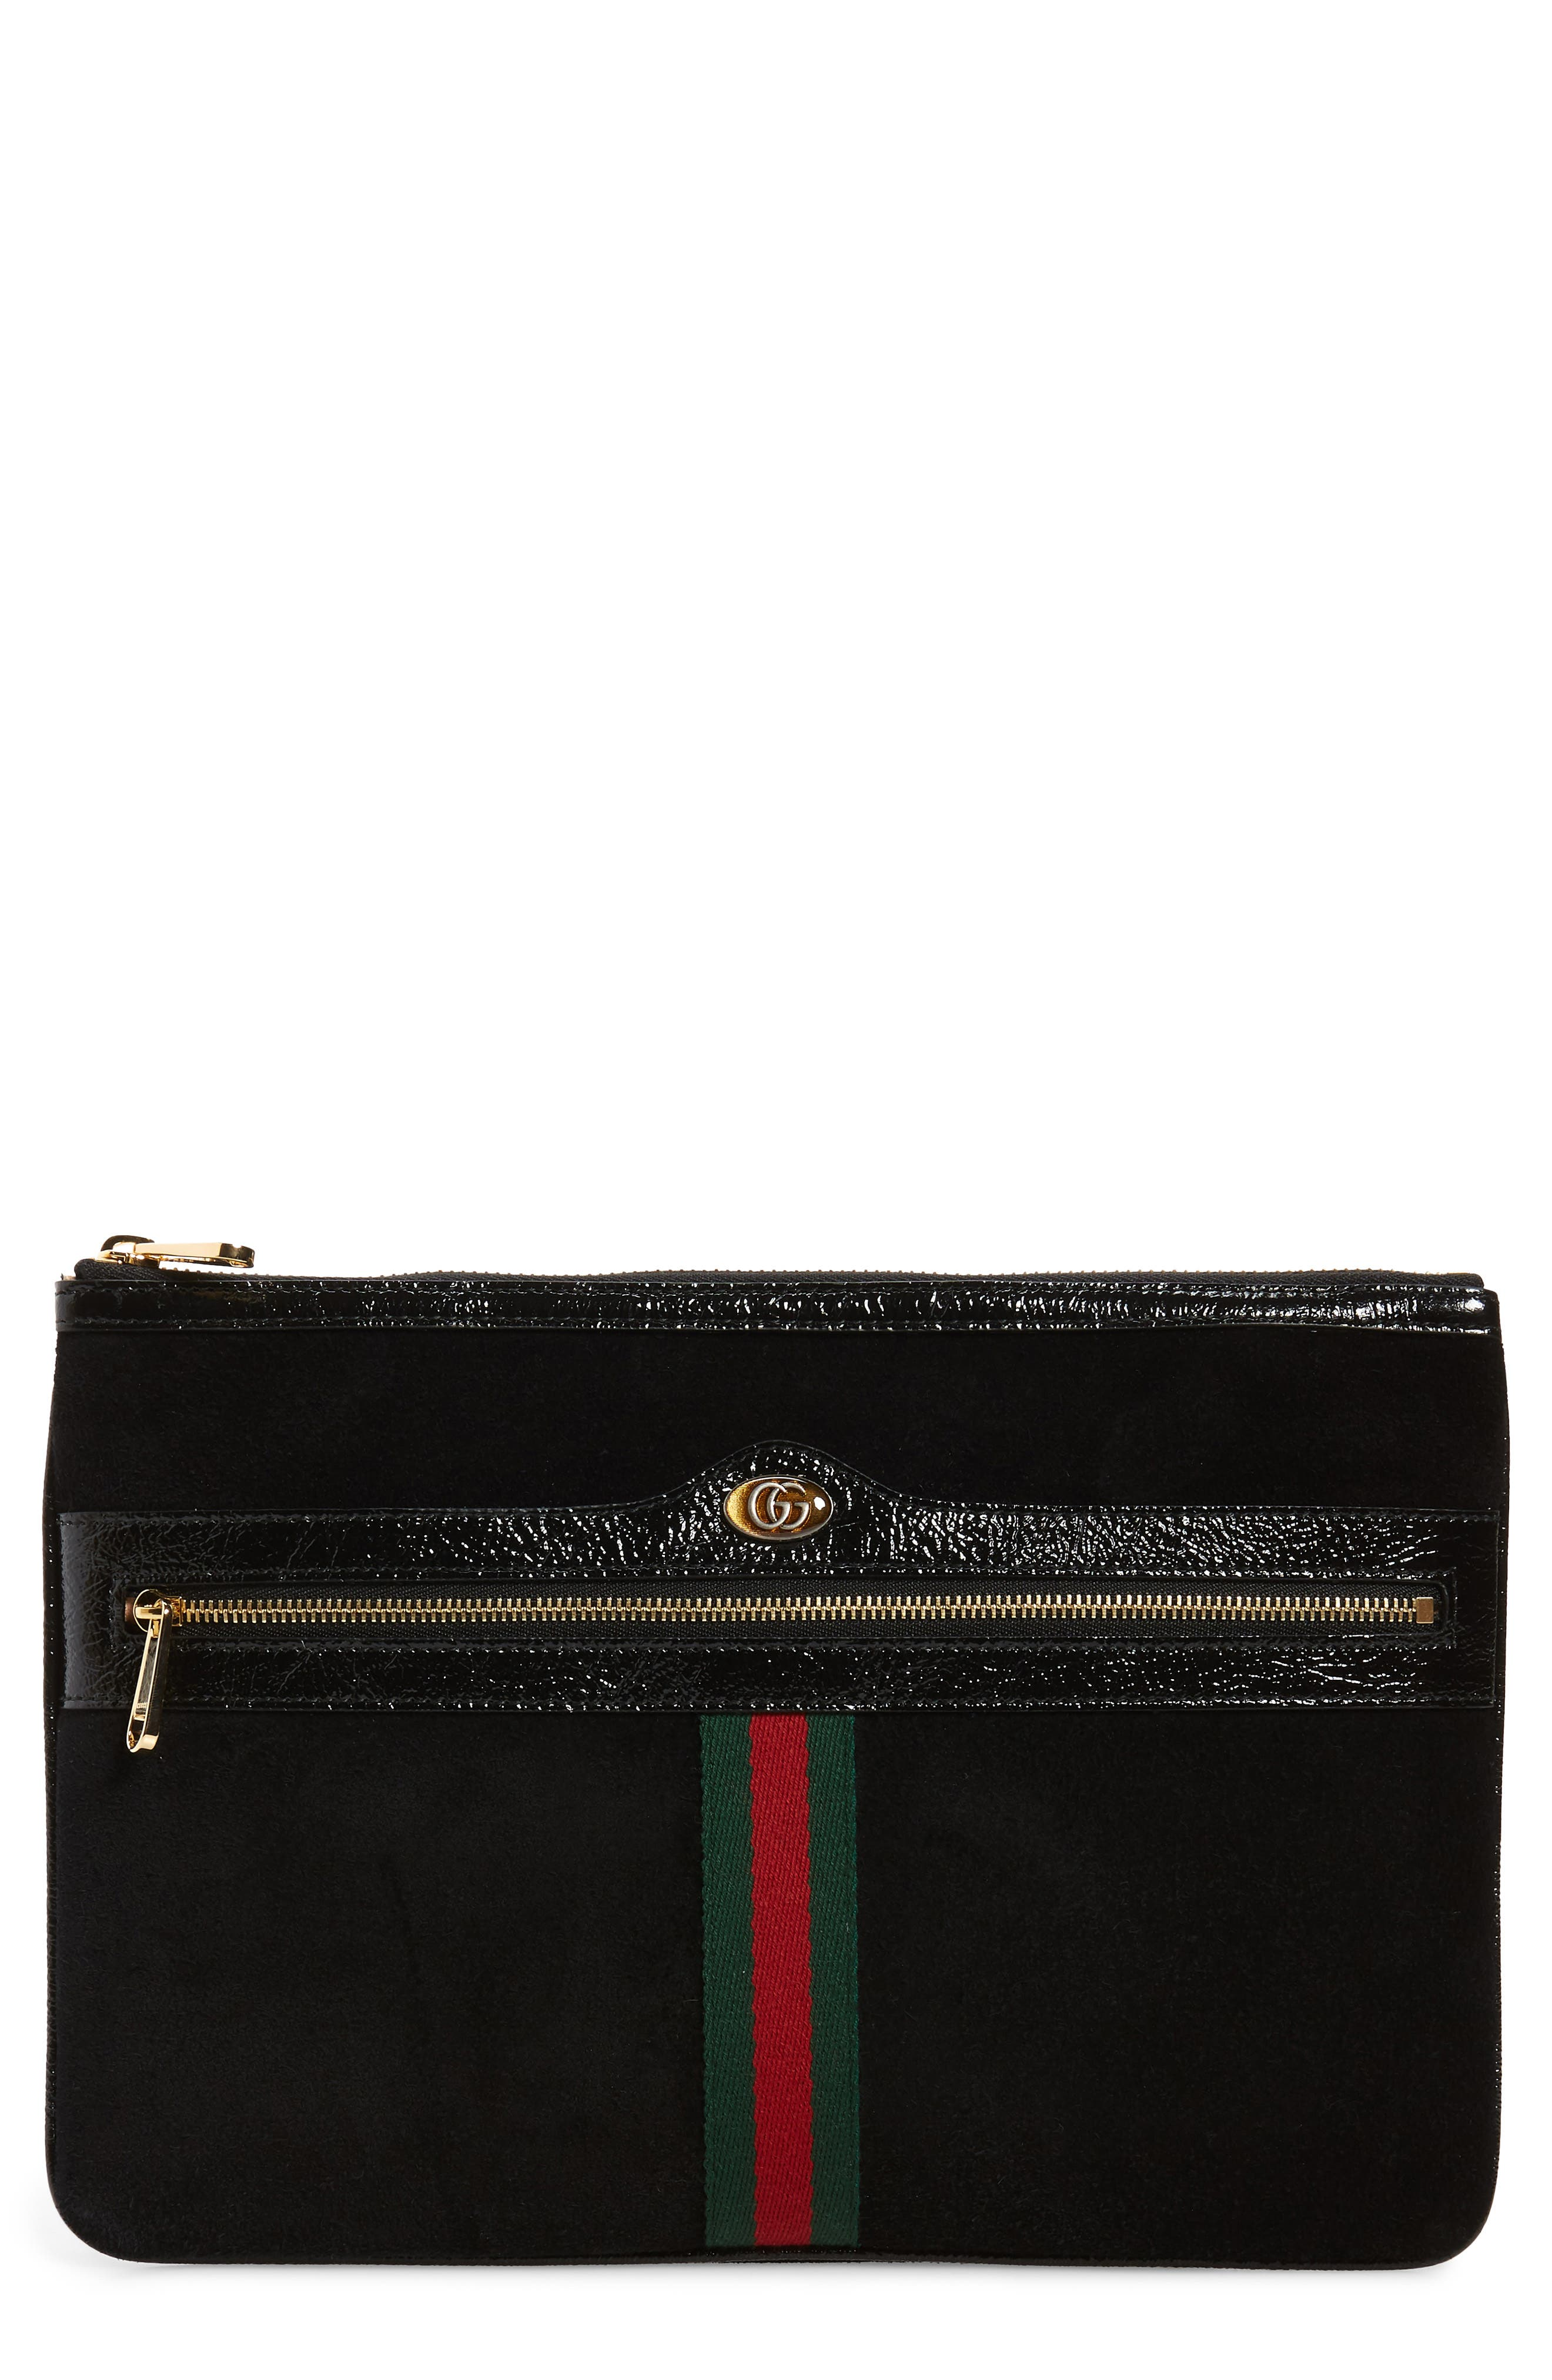 GUCCI, Ophidia Suede Pouch, Main thumbnail 1, color, NERO/ VERT/ RED